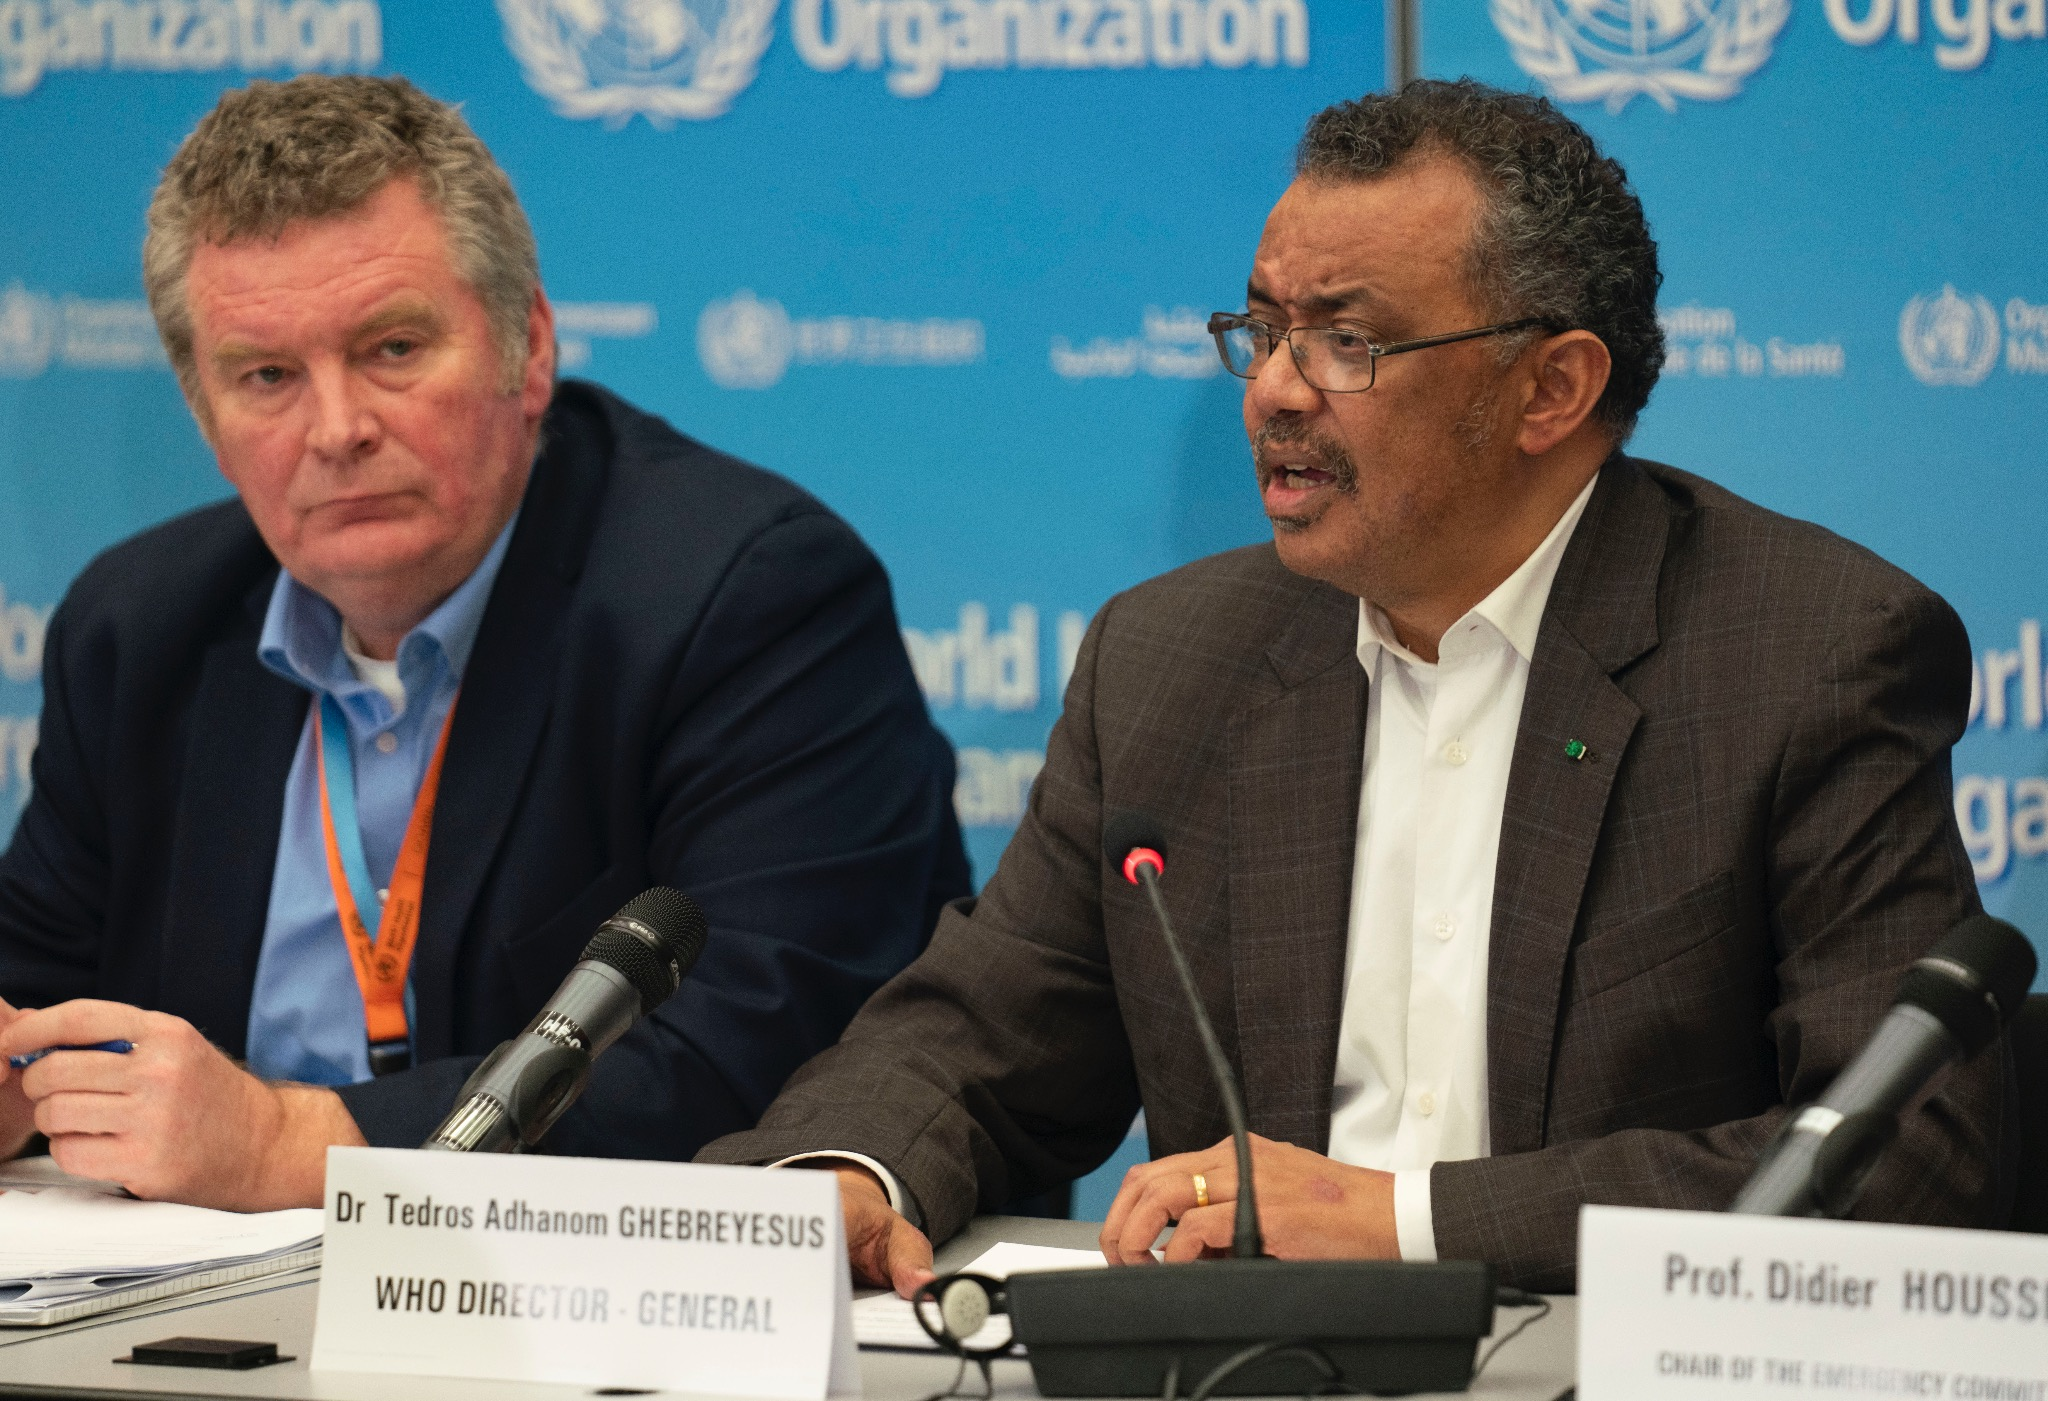 WHO Director-General Tedros Adhanom Ghebreyesus held a press conference declaring the Wuhan coronavirus a public health emergency of international concern. Photo courtesy: Twitter/@WHO